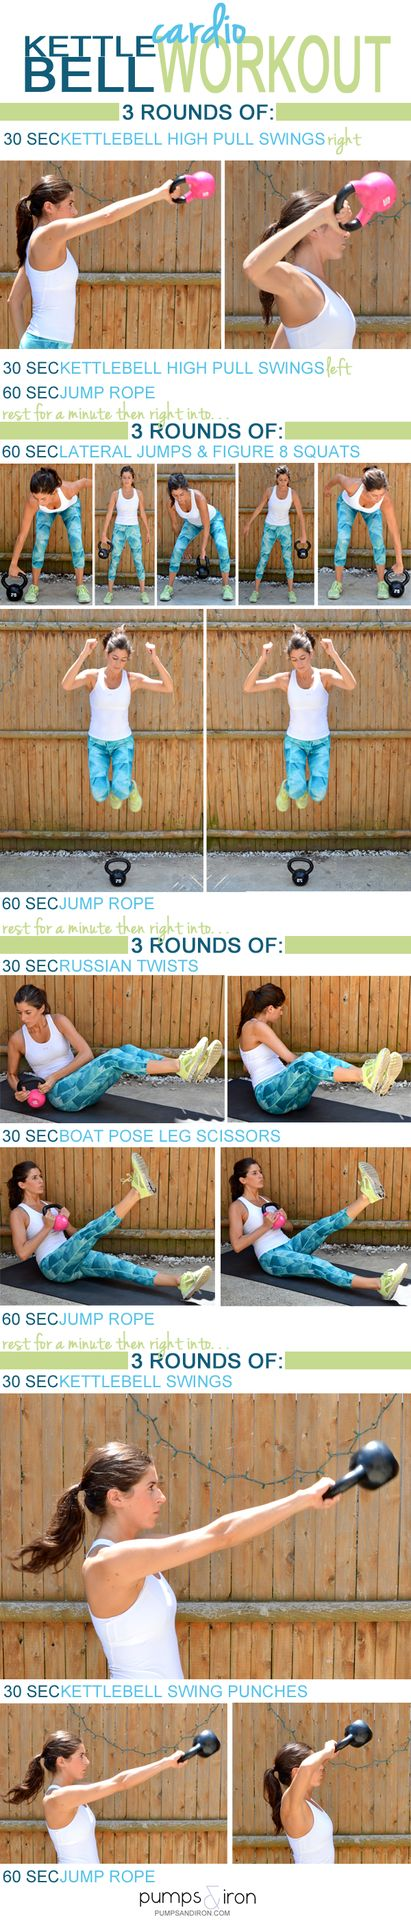 Kettlebell Cardio #Workout